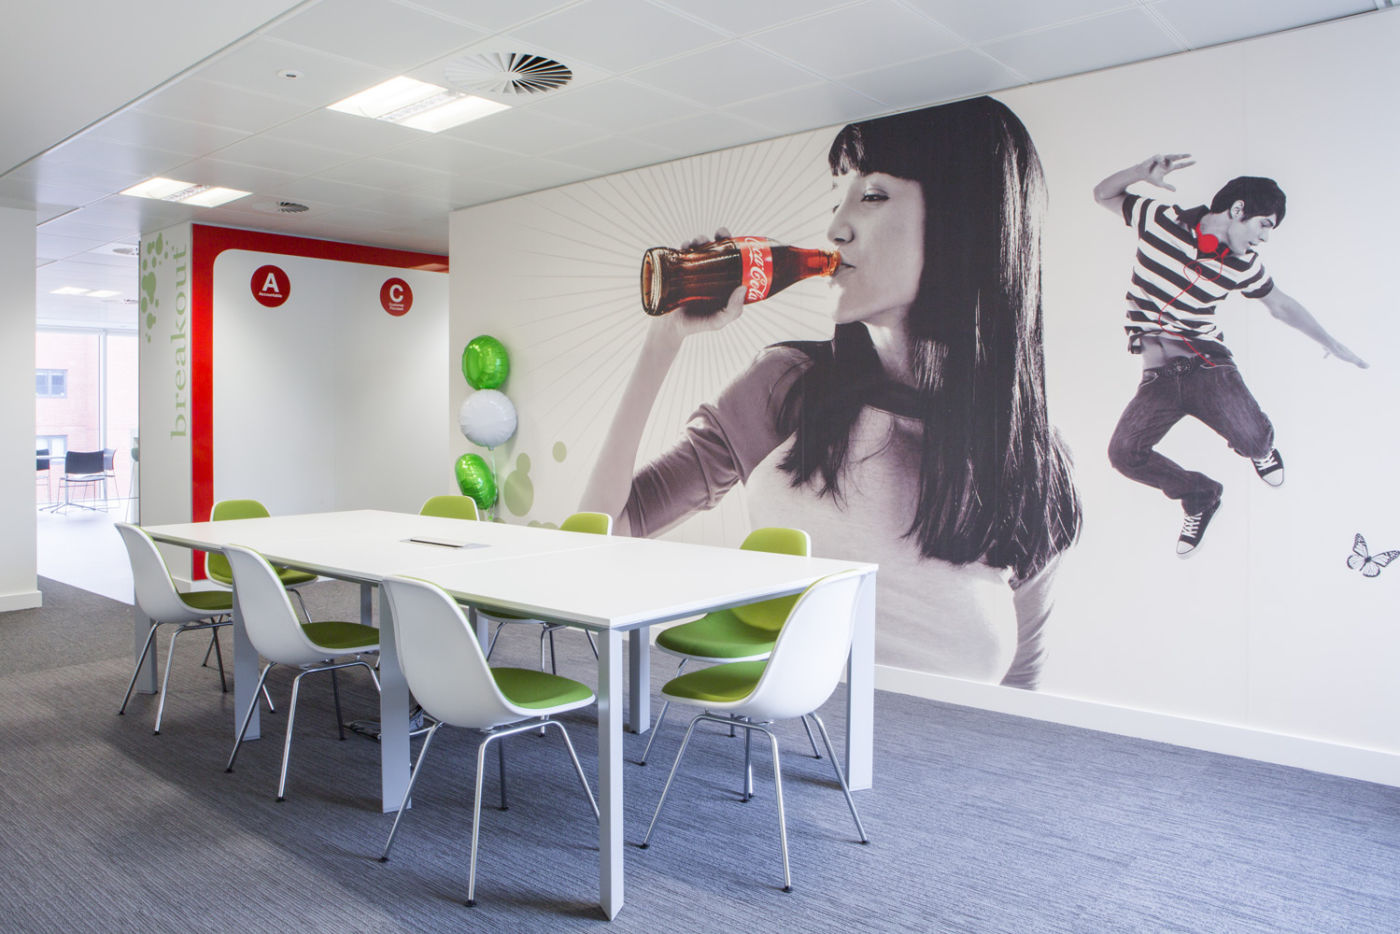 Meeting area with wallpaper of woman drinking Coca Cola